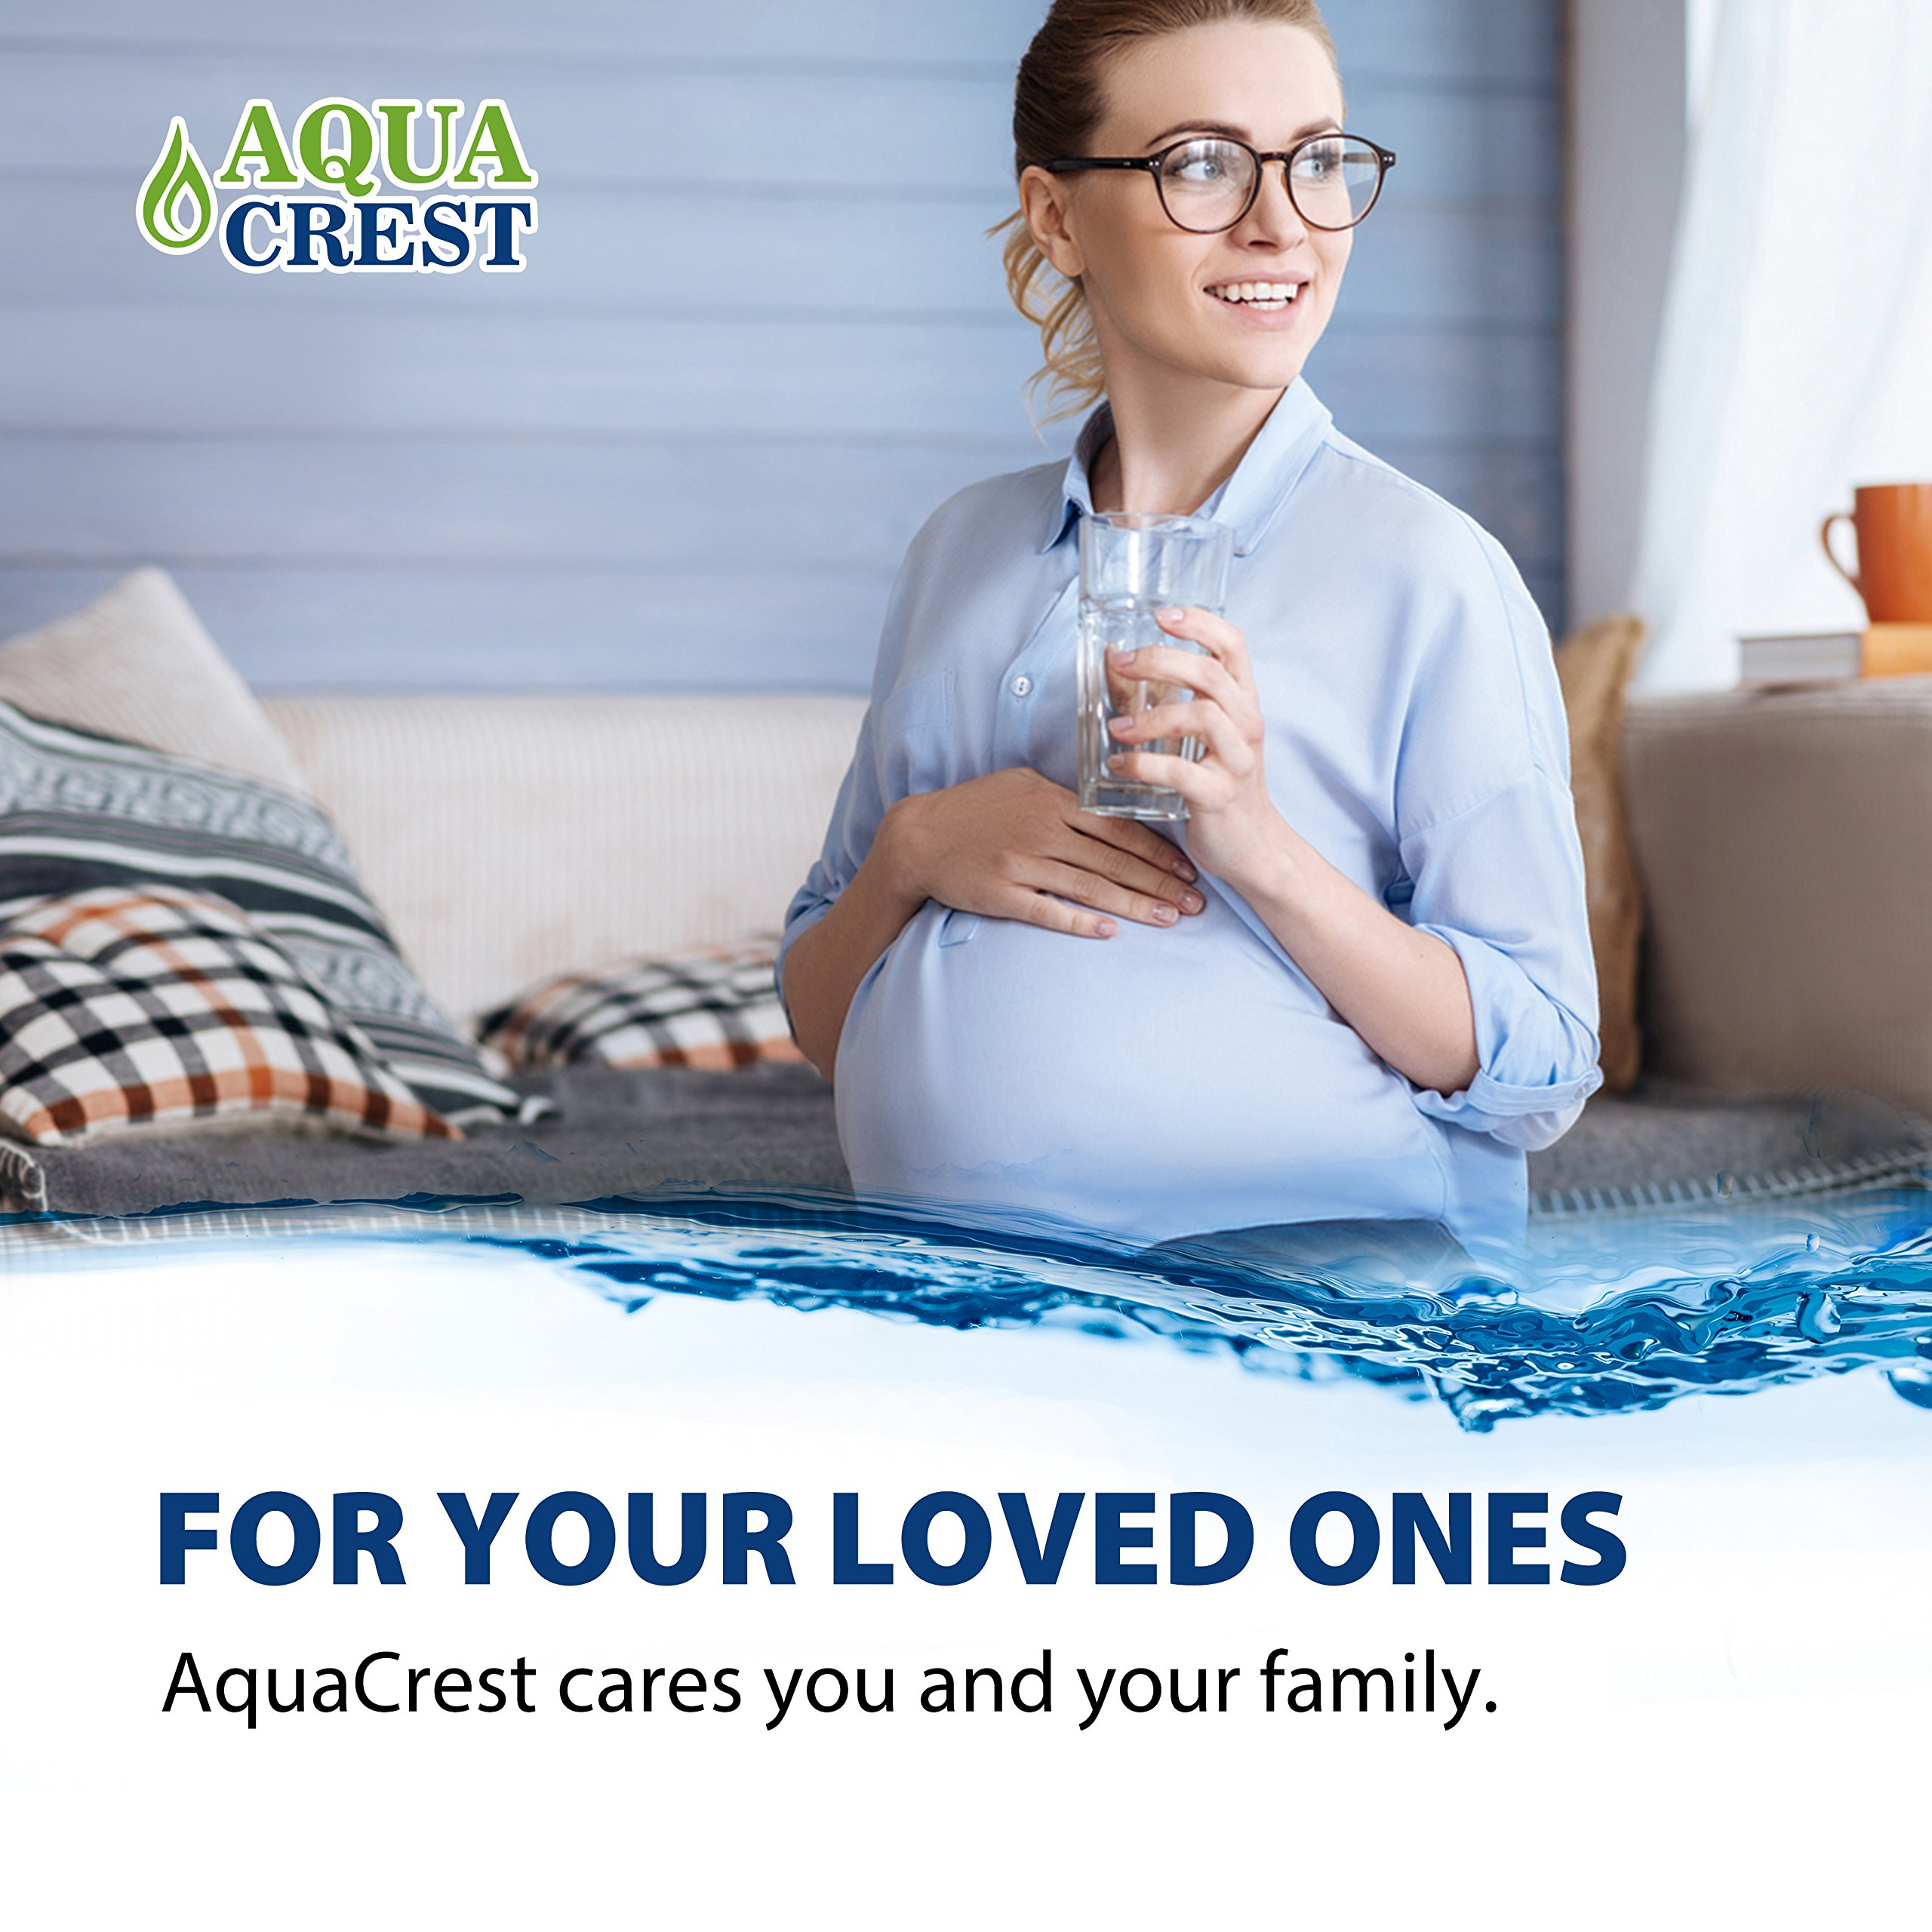 AQUACREST RF-3375 Replacement Water Filter, Compatible with Pur RF-3375 Faucet Water Filter (Pack of 3) by AQUA CREST (Image #7)